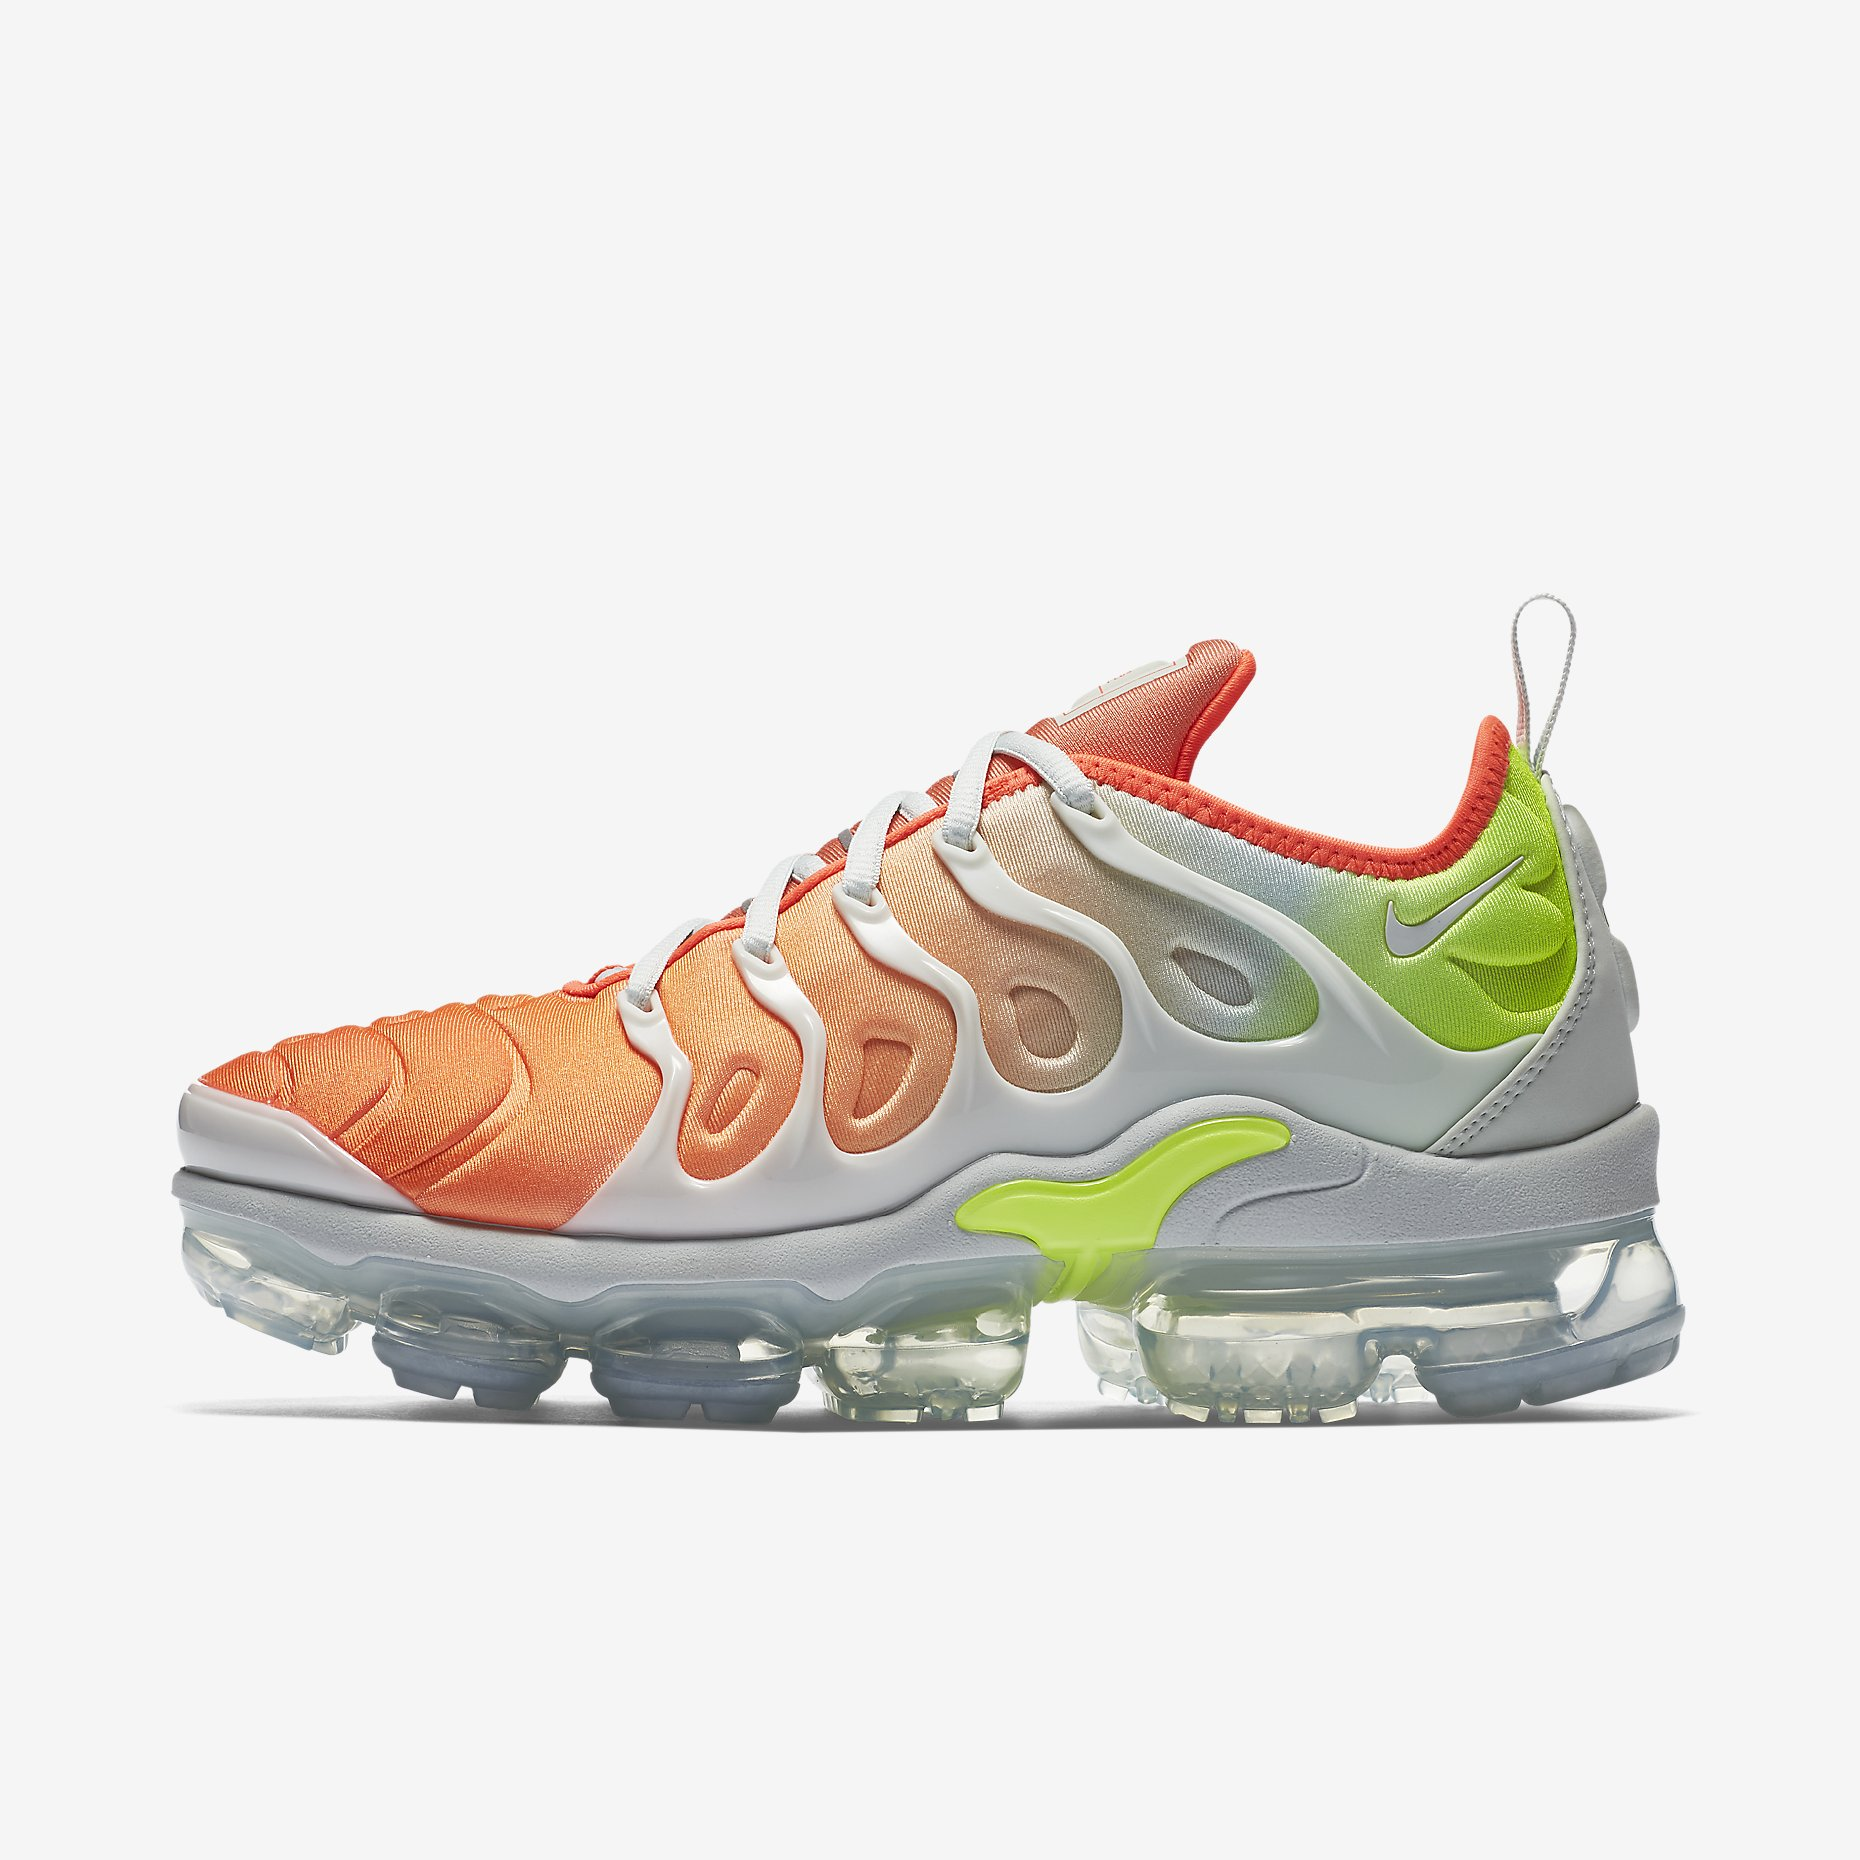 a26dc41738434 NIKE WMNS AIR VAPORMAX PLUS AO4550-003 BARELY GREY TOTAL CRIMSON ...